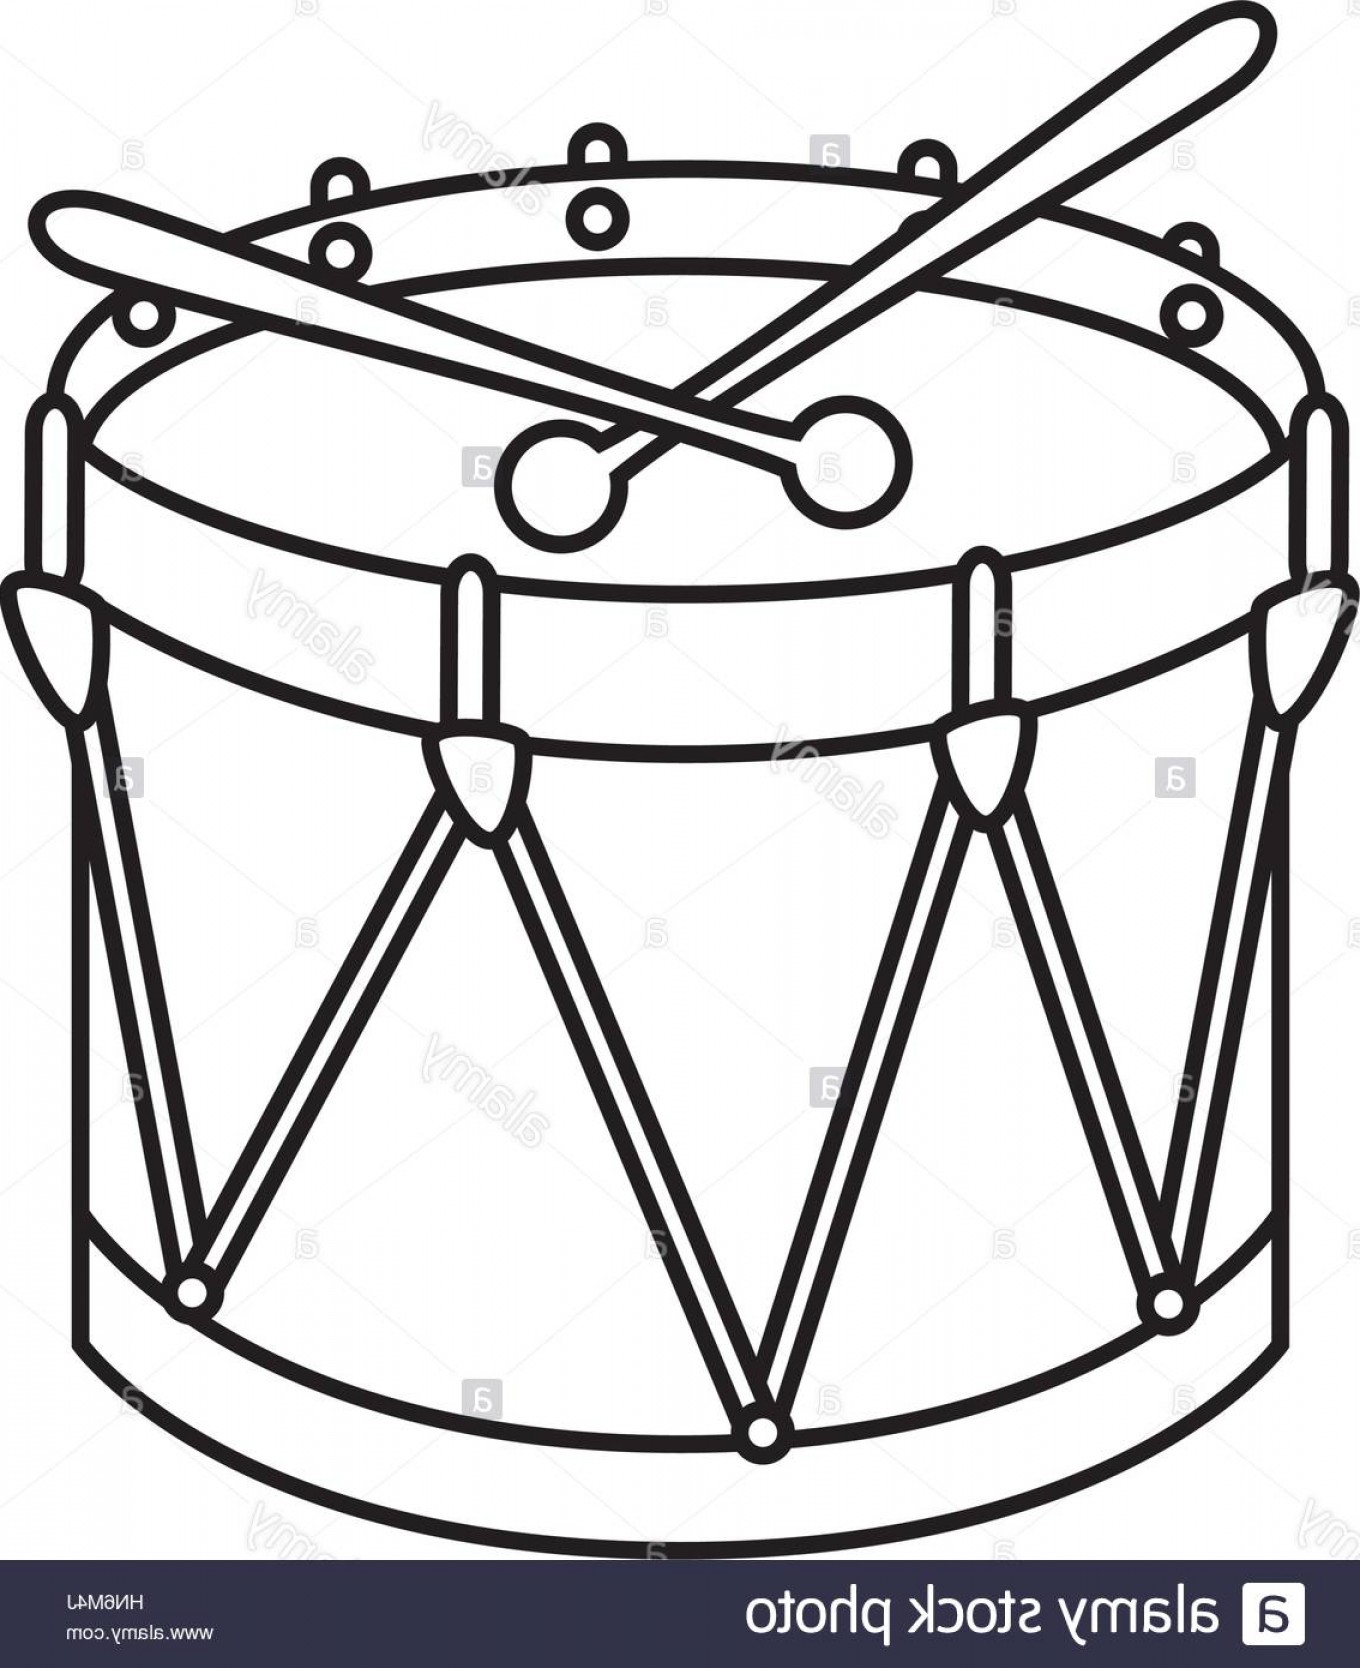 Drum Vector Art: Stock Photo Drum Instrument Isolated Icon Vector Illustration Design